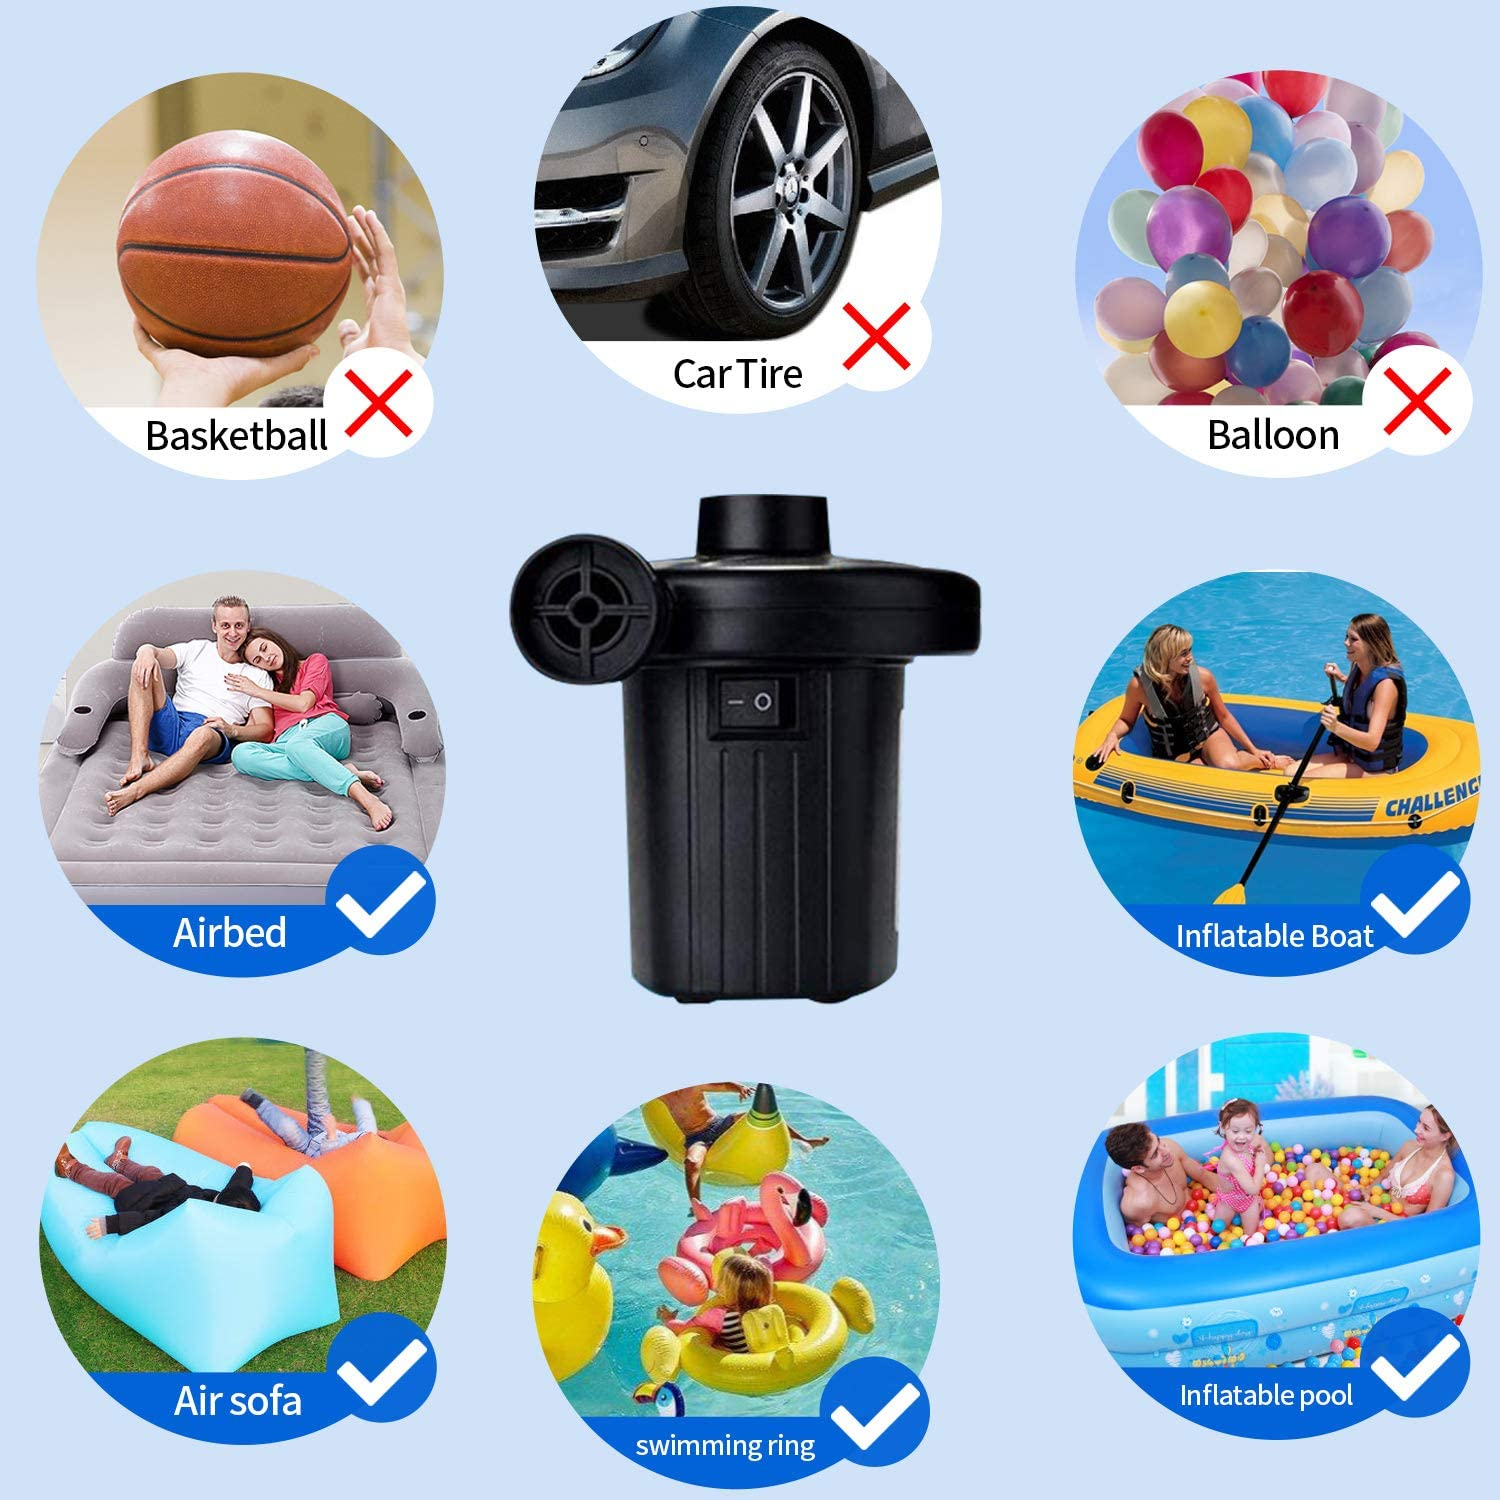 110V AC//130W Electric Air Pump Portable Quick-Fill AC Inflator//Deflator Pumps with 4 Nozzles for Air Mattress Bed Inflatable Pool Boat Raft Toys Swimming Ring